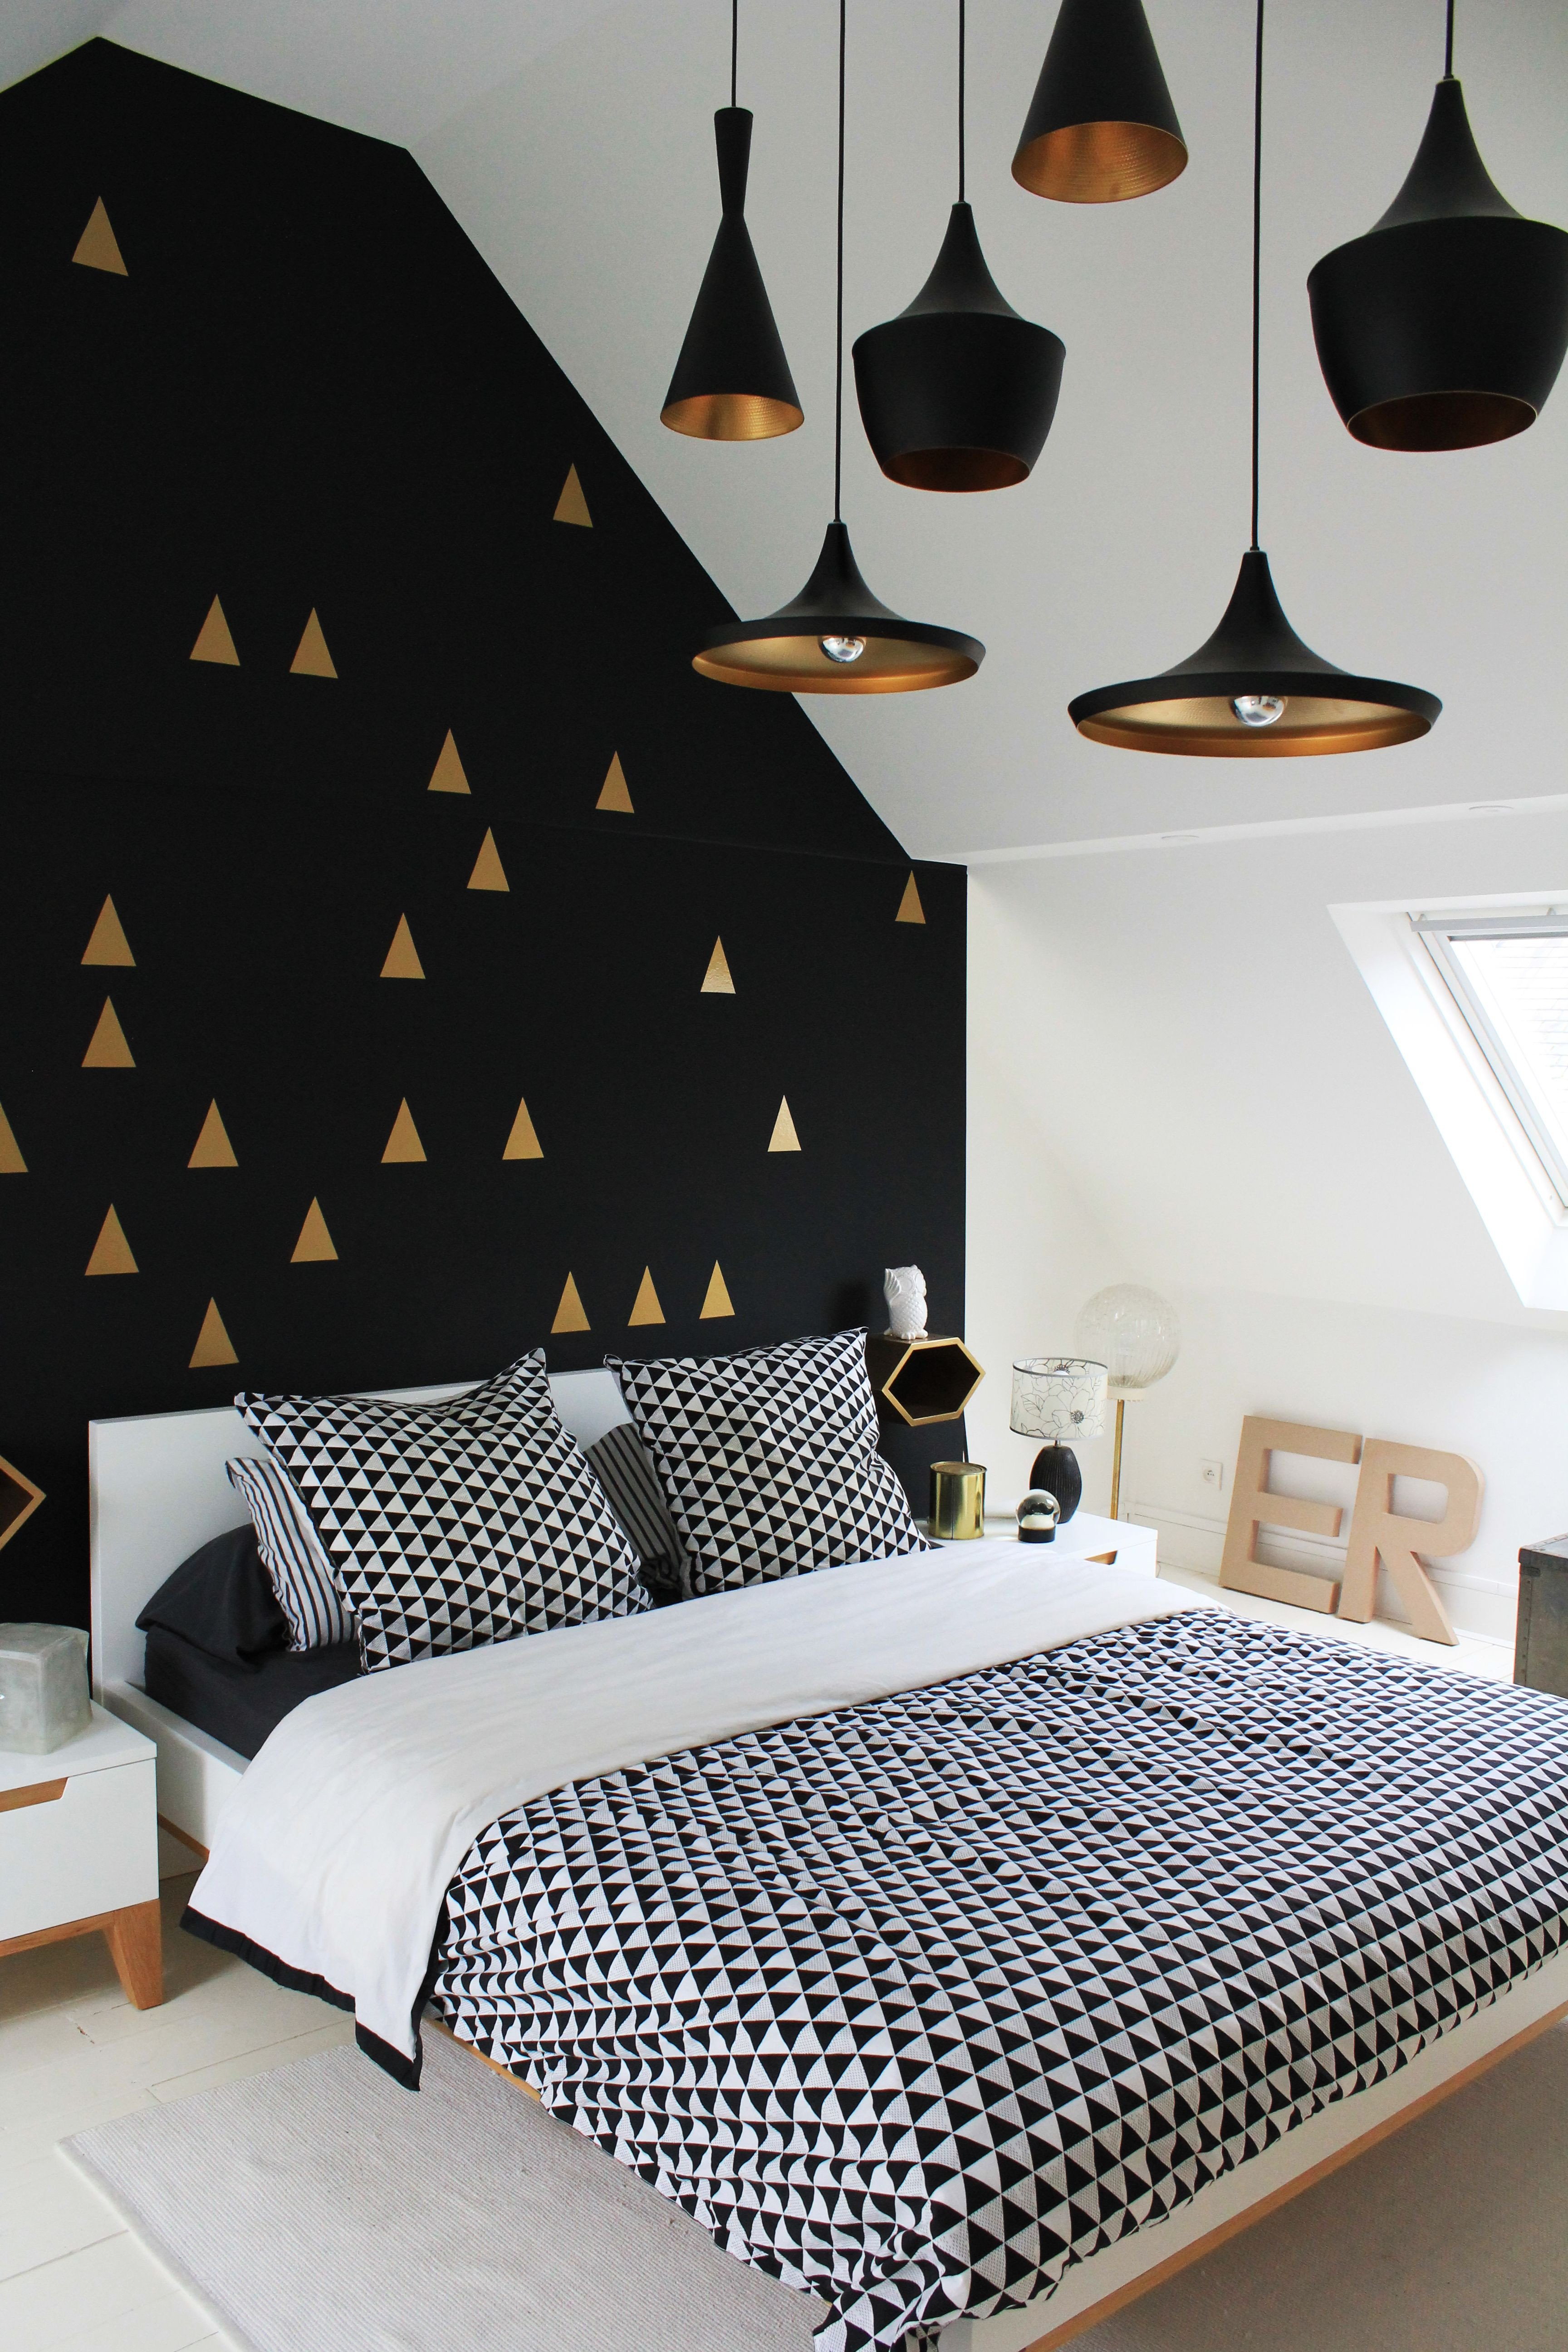 Gray and Gold Bedroom Luxury Bedroom White Gold and Black Interior Love the Wall and